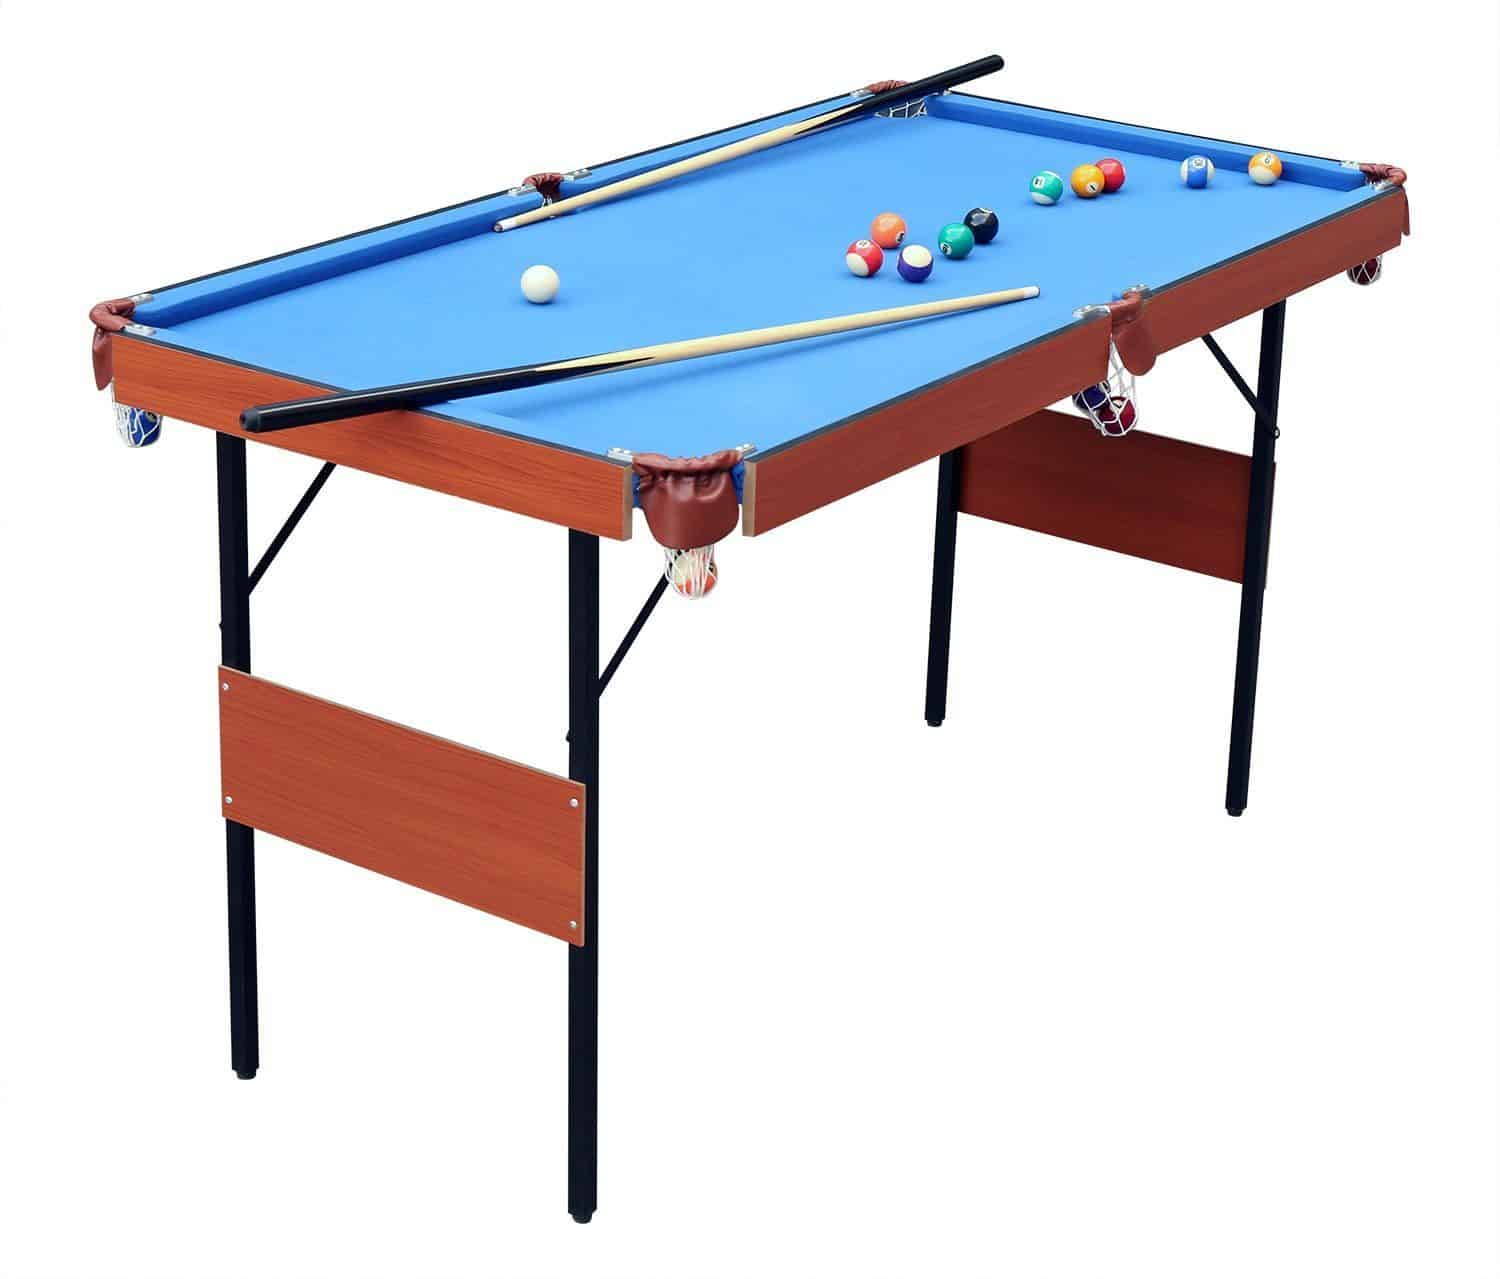 HLC 55 Folding Space Saver Pool Table Review CuesUp